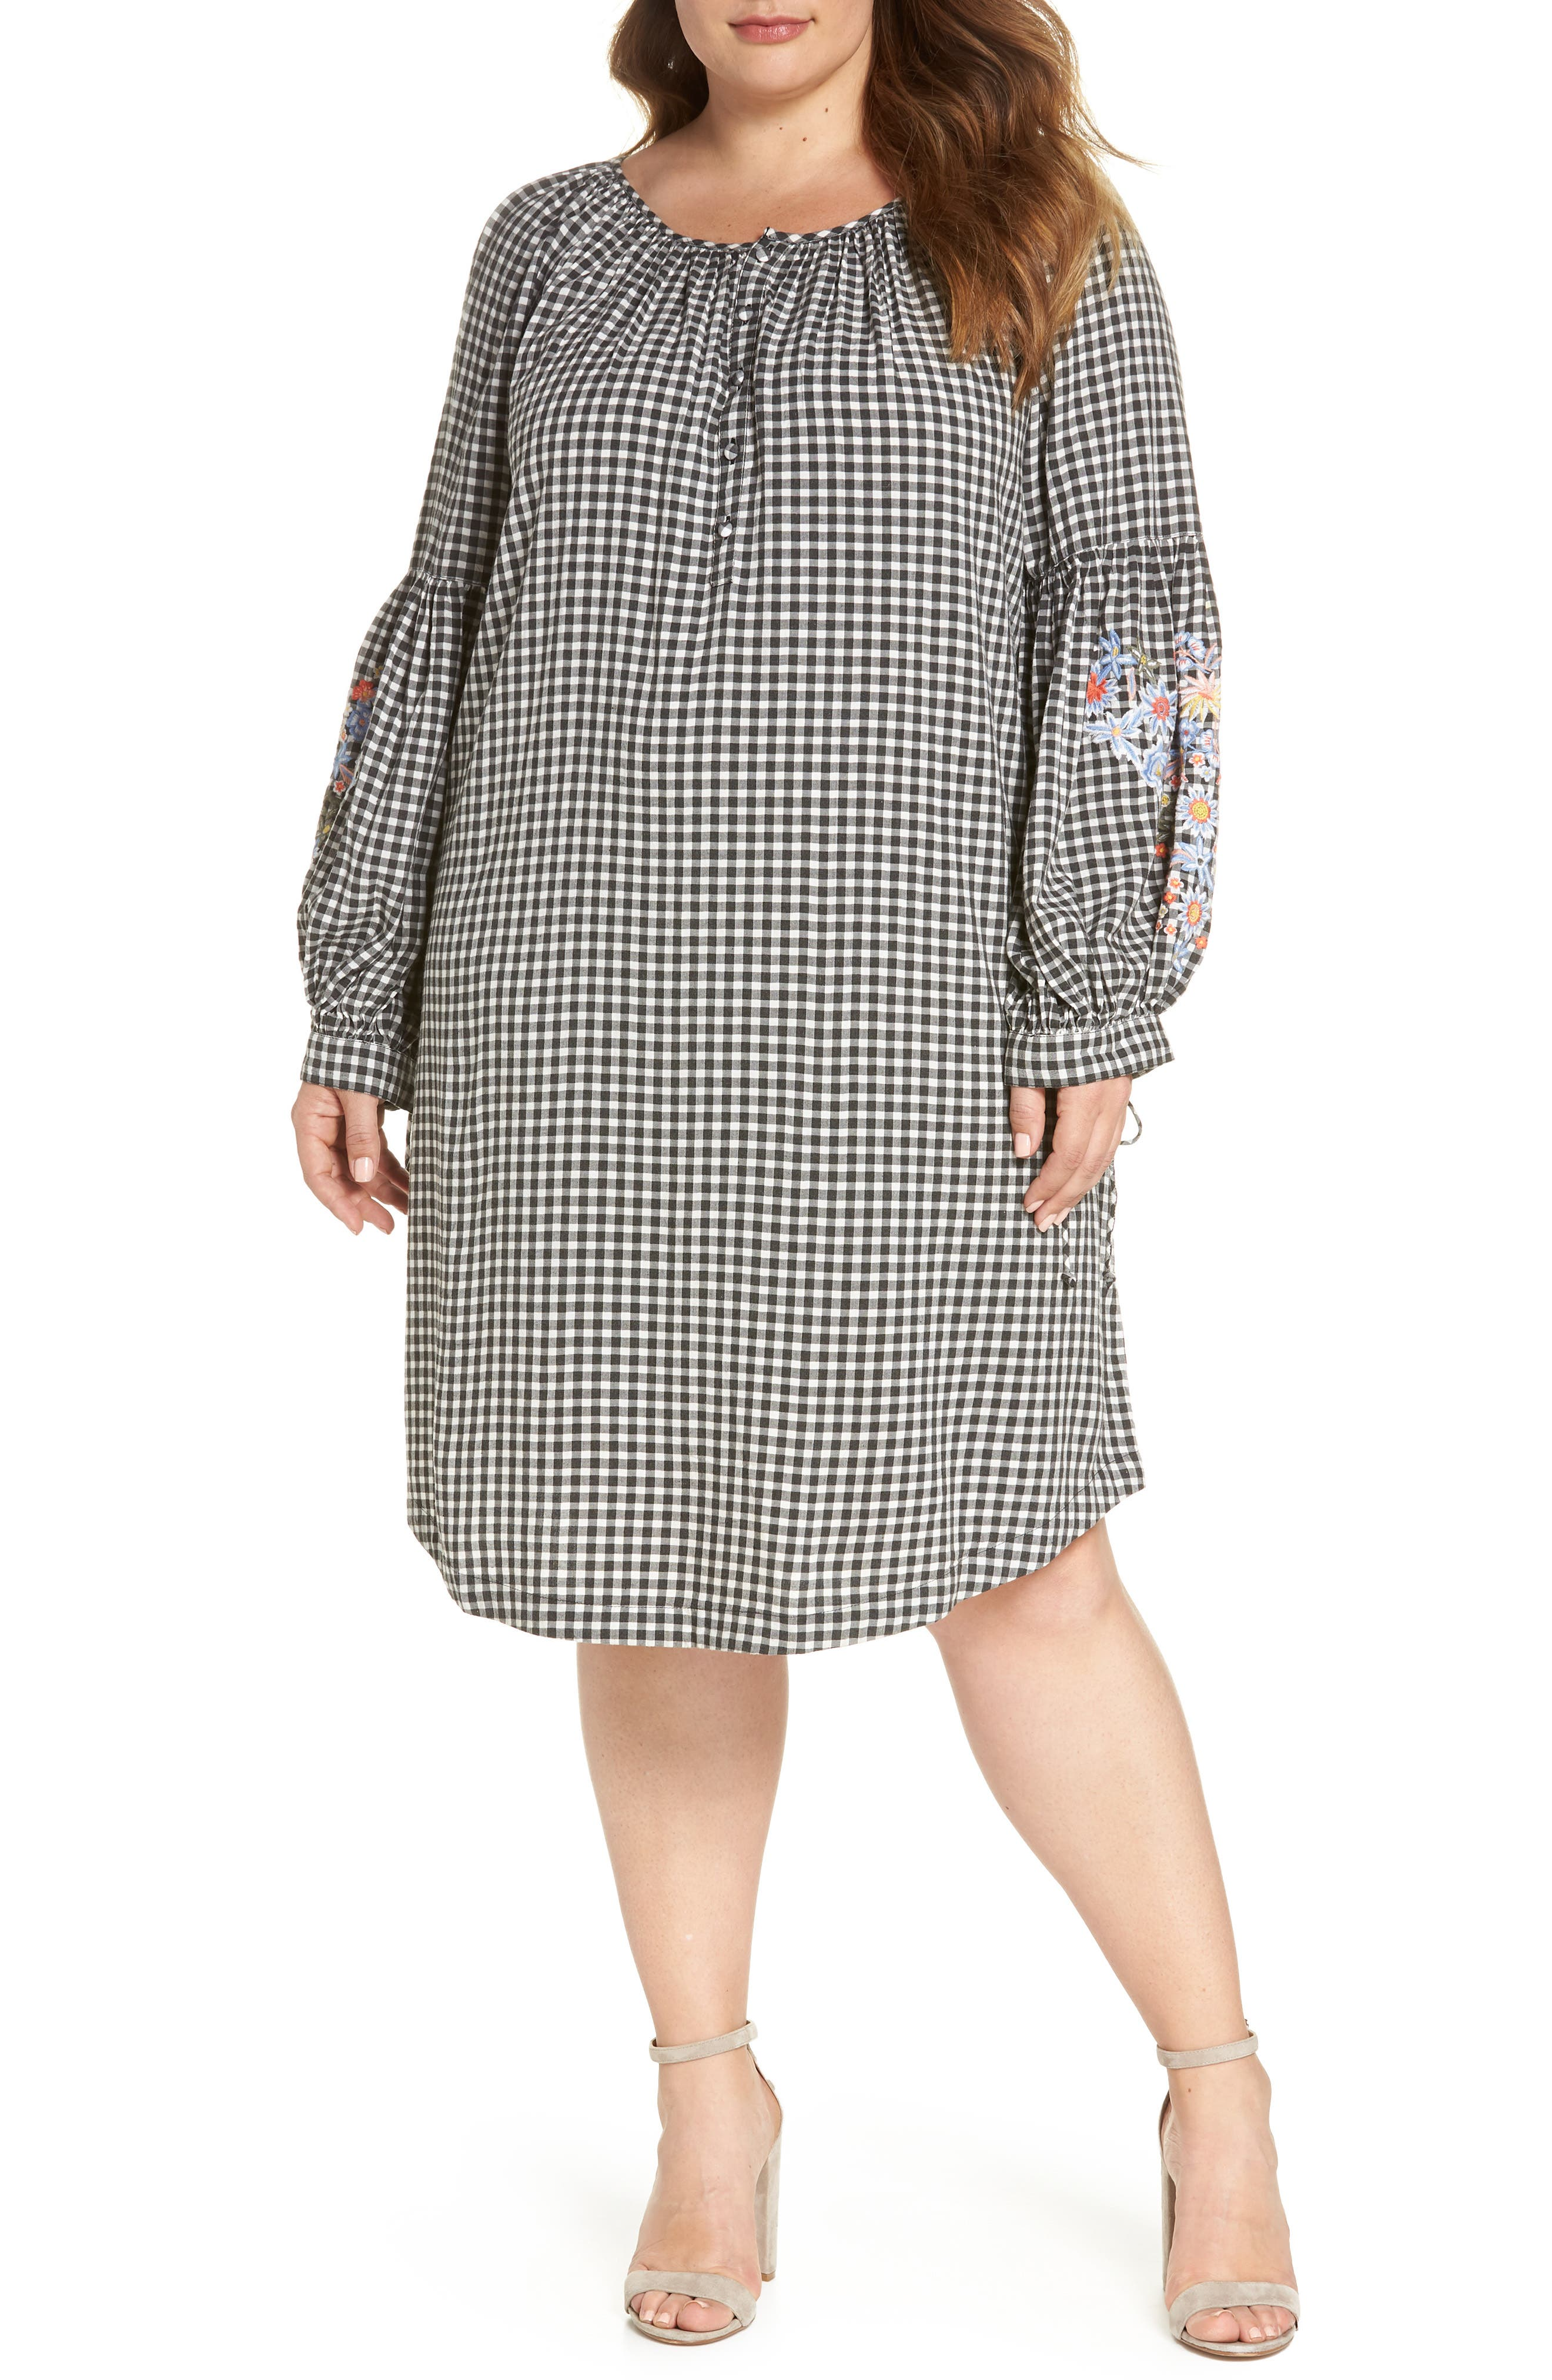 Embroidered Puff Sleeve Gingham Shift Dress,                             Main thumbnail 1, color,                             Black-White Gingham